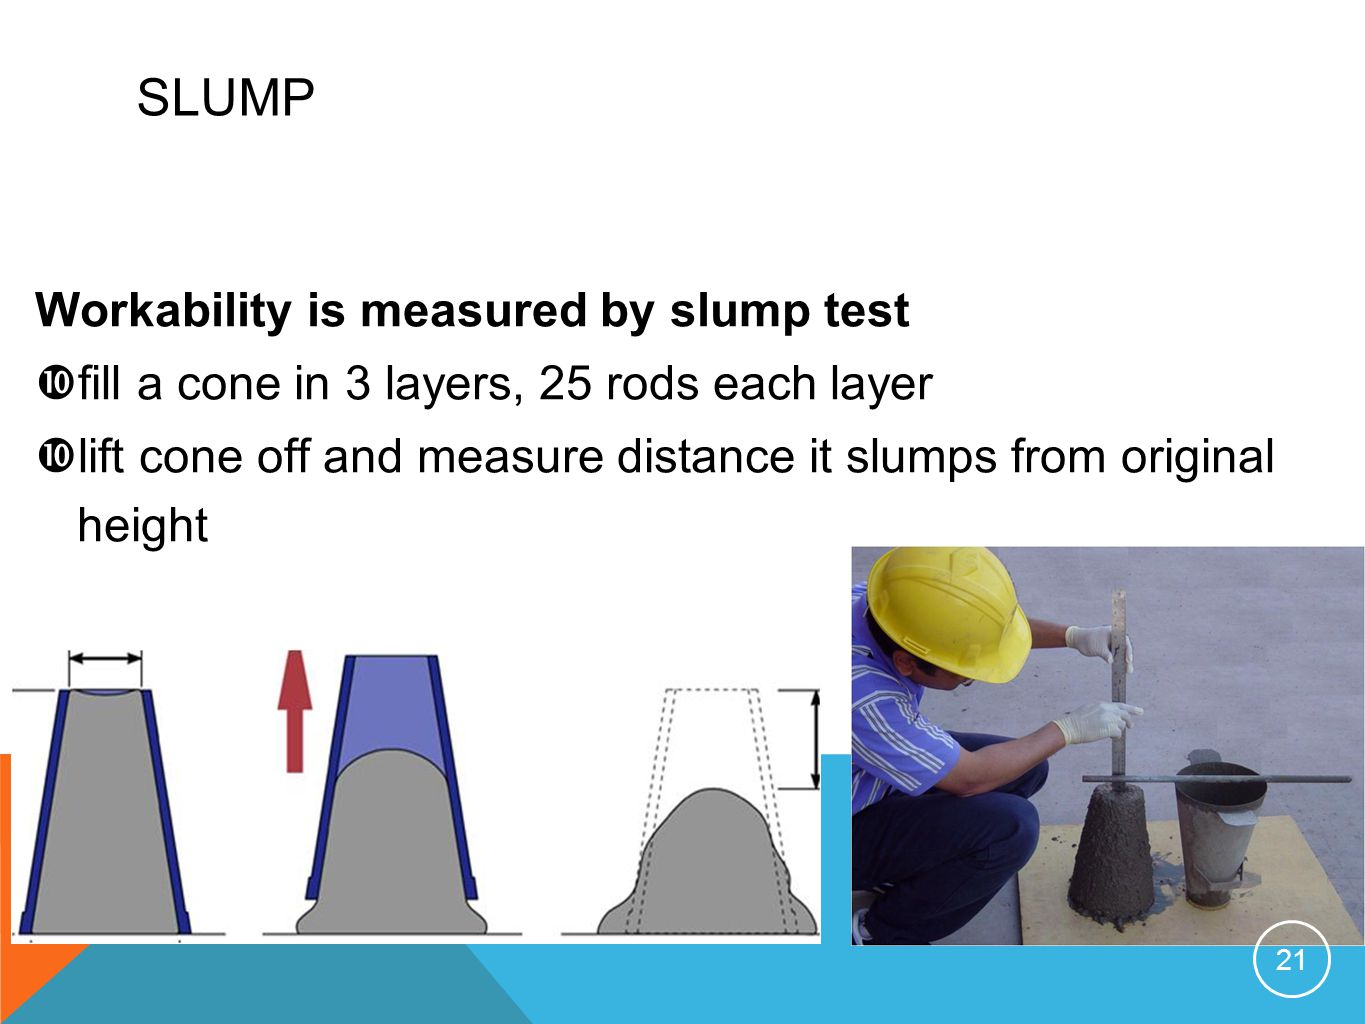 SLUMP Workability is measured by slump test fill a cone in 3 layers, 25 rods each layer lift cone off and measure distance it slumps from original hei